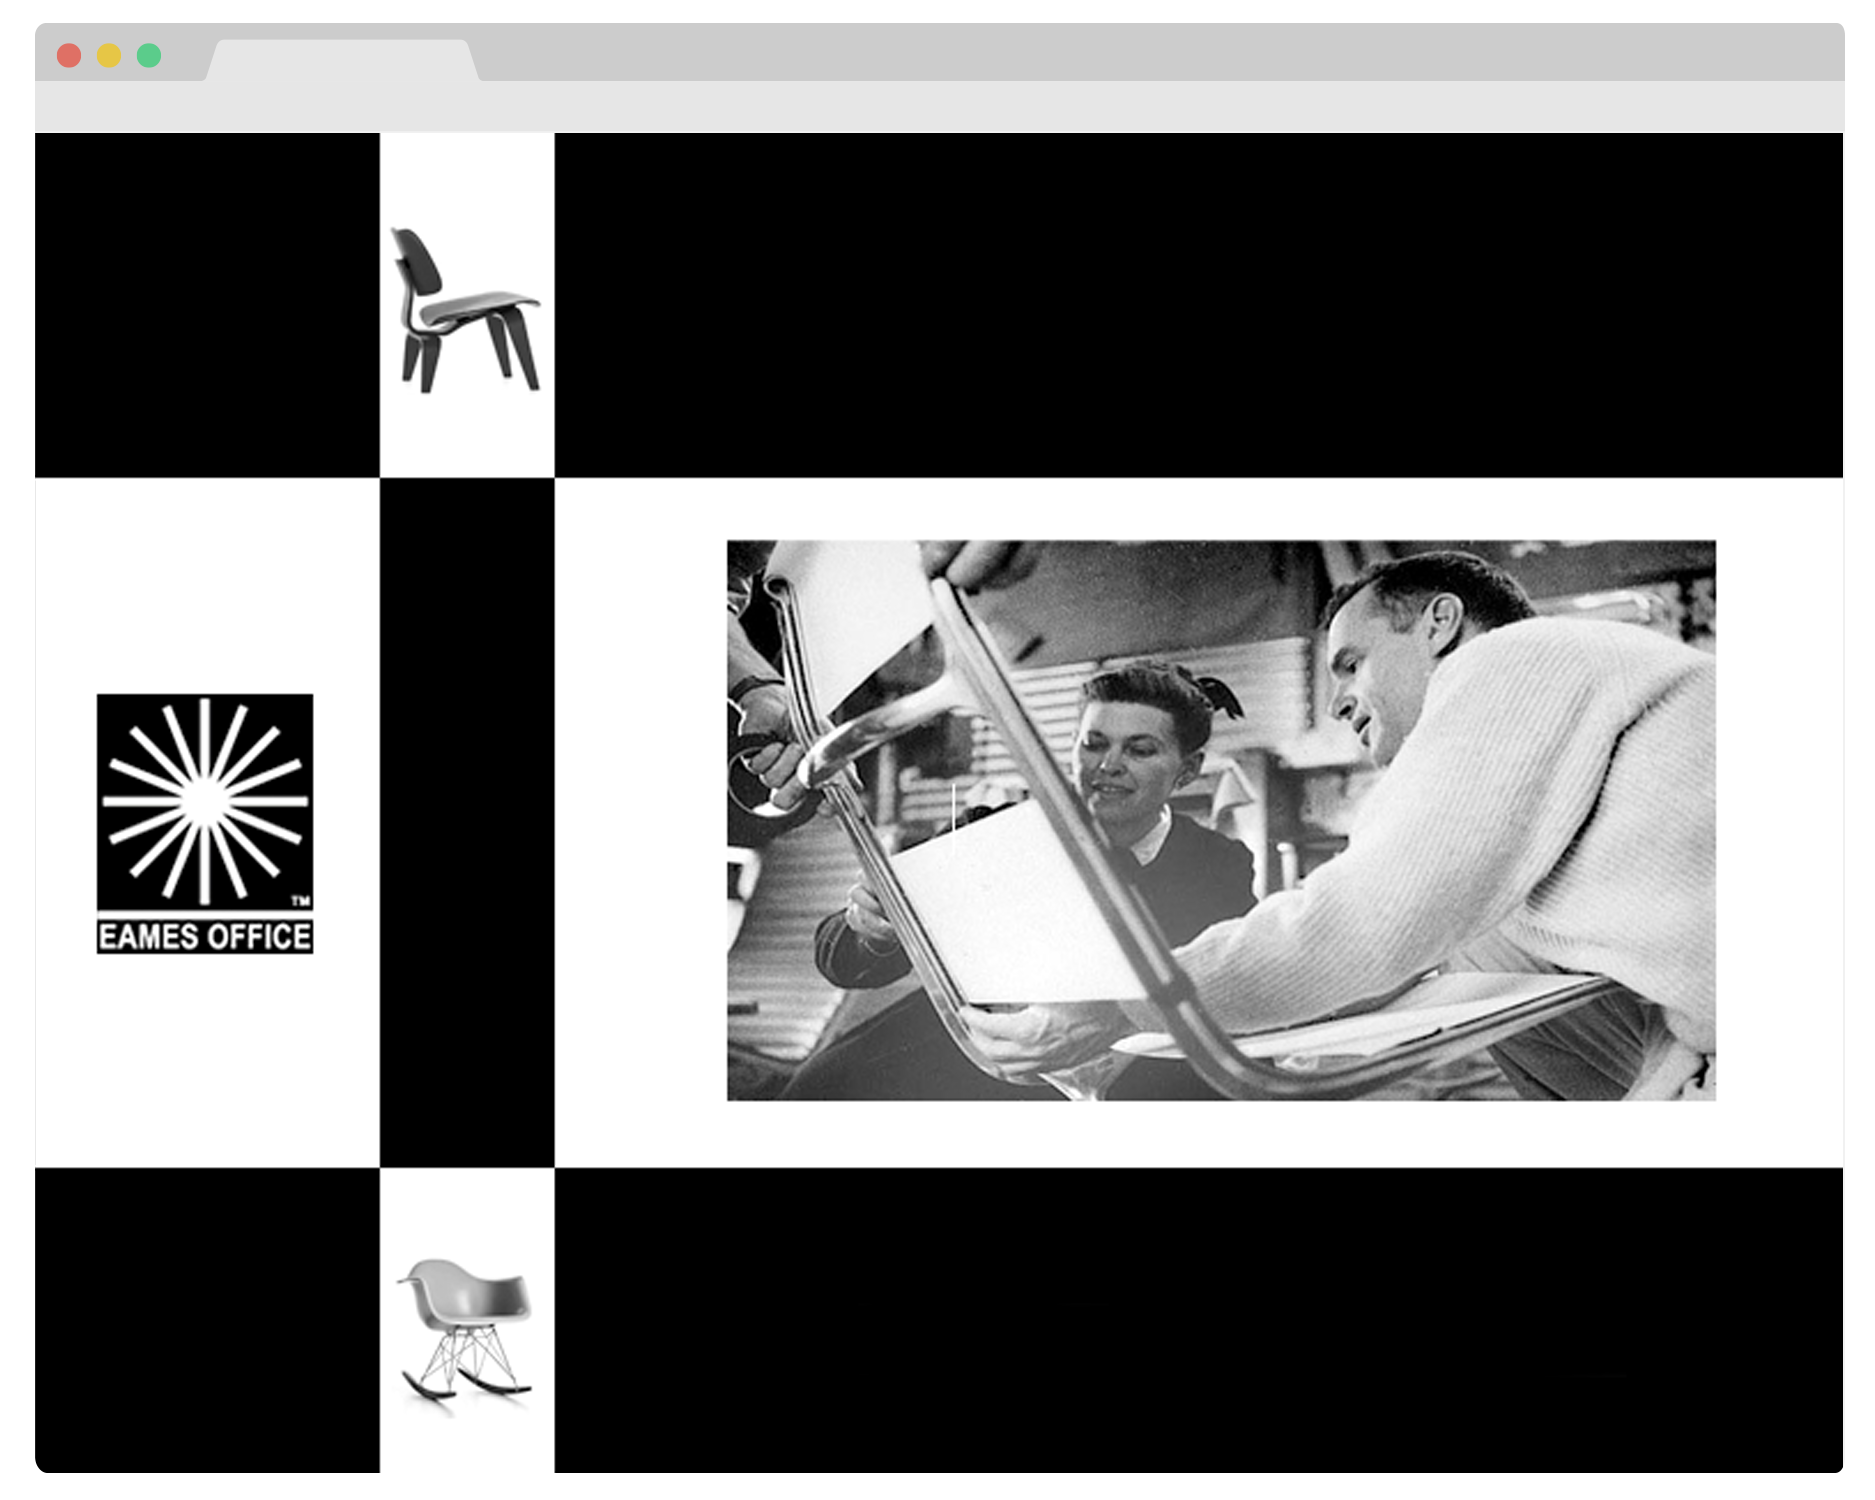 Eames1.png